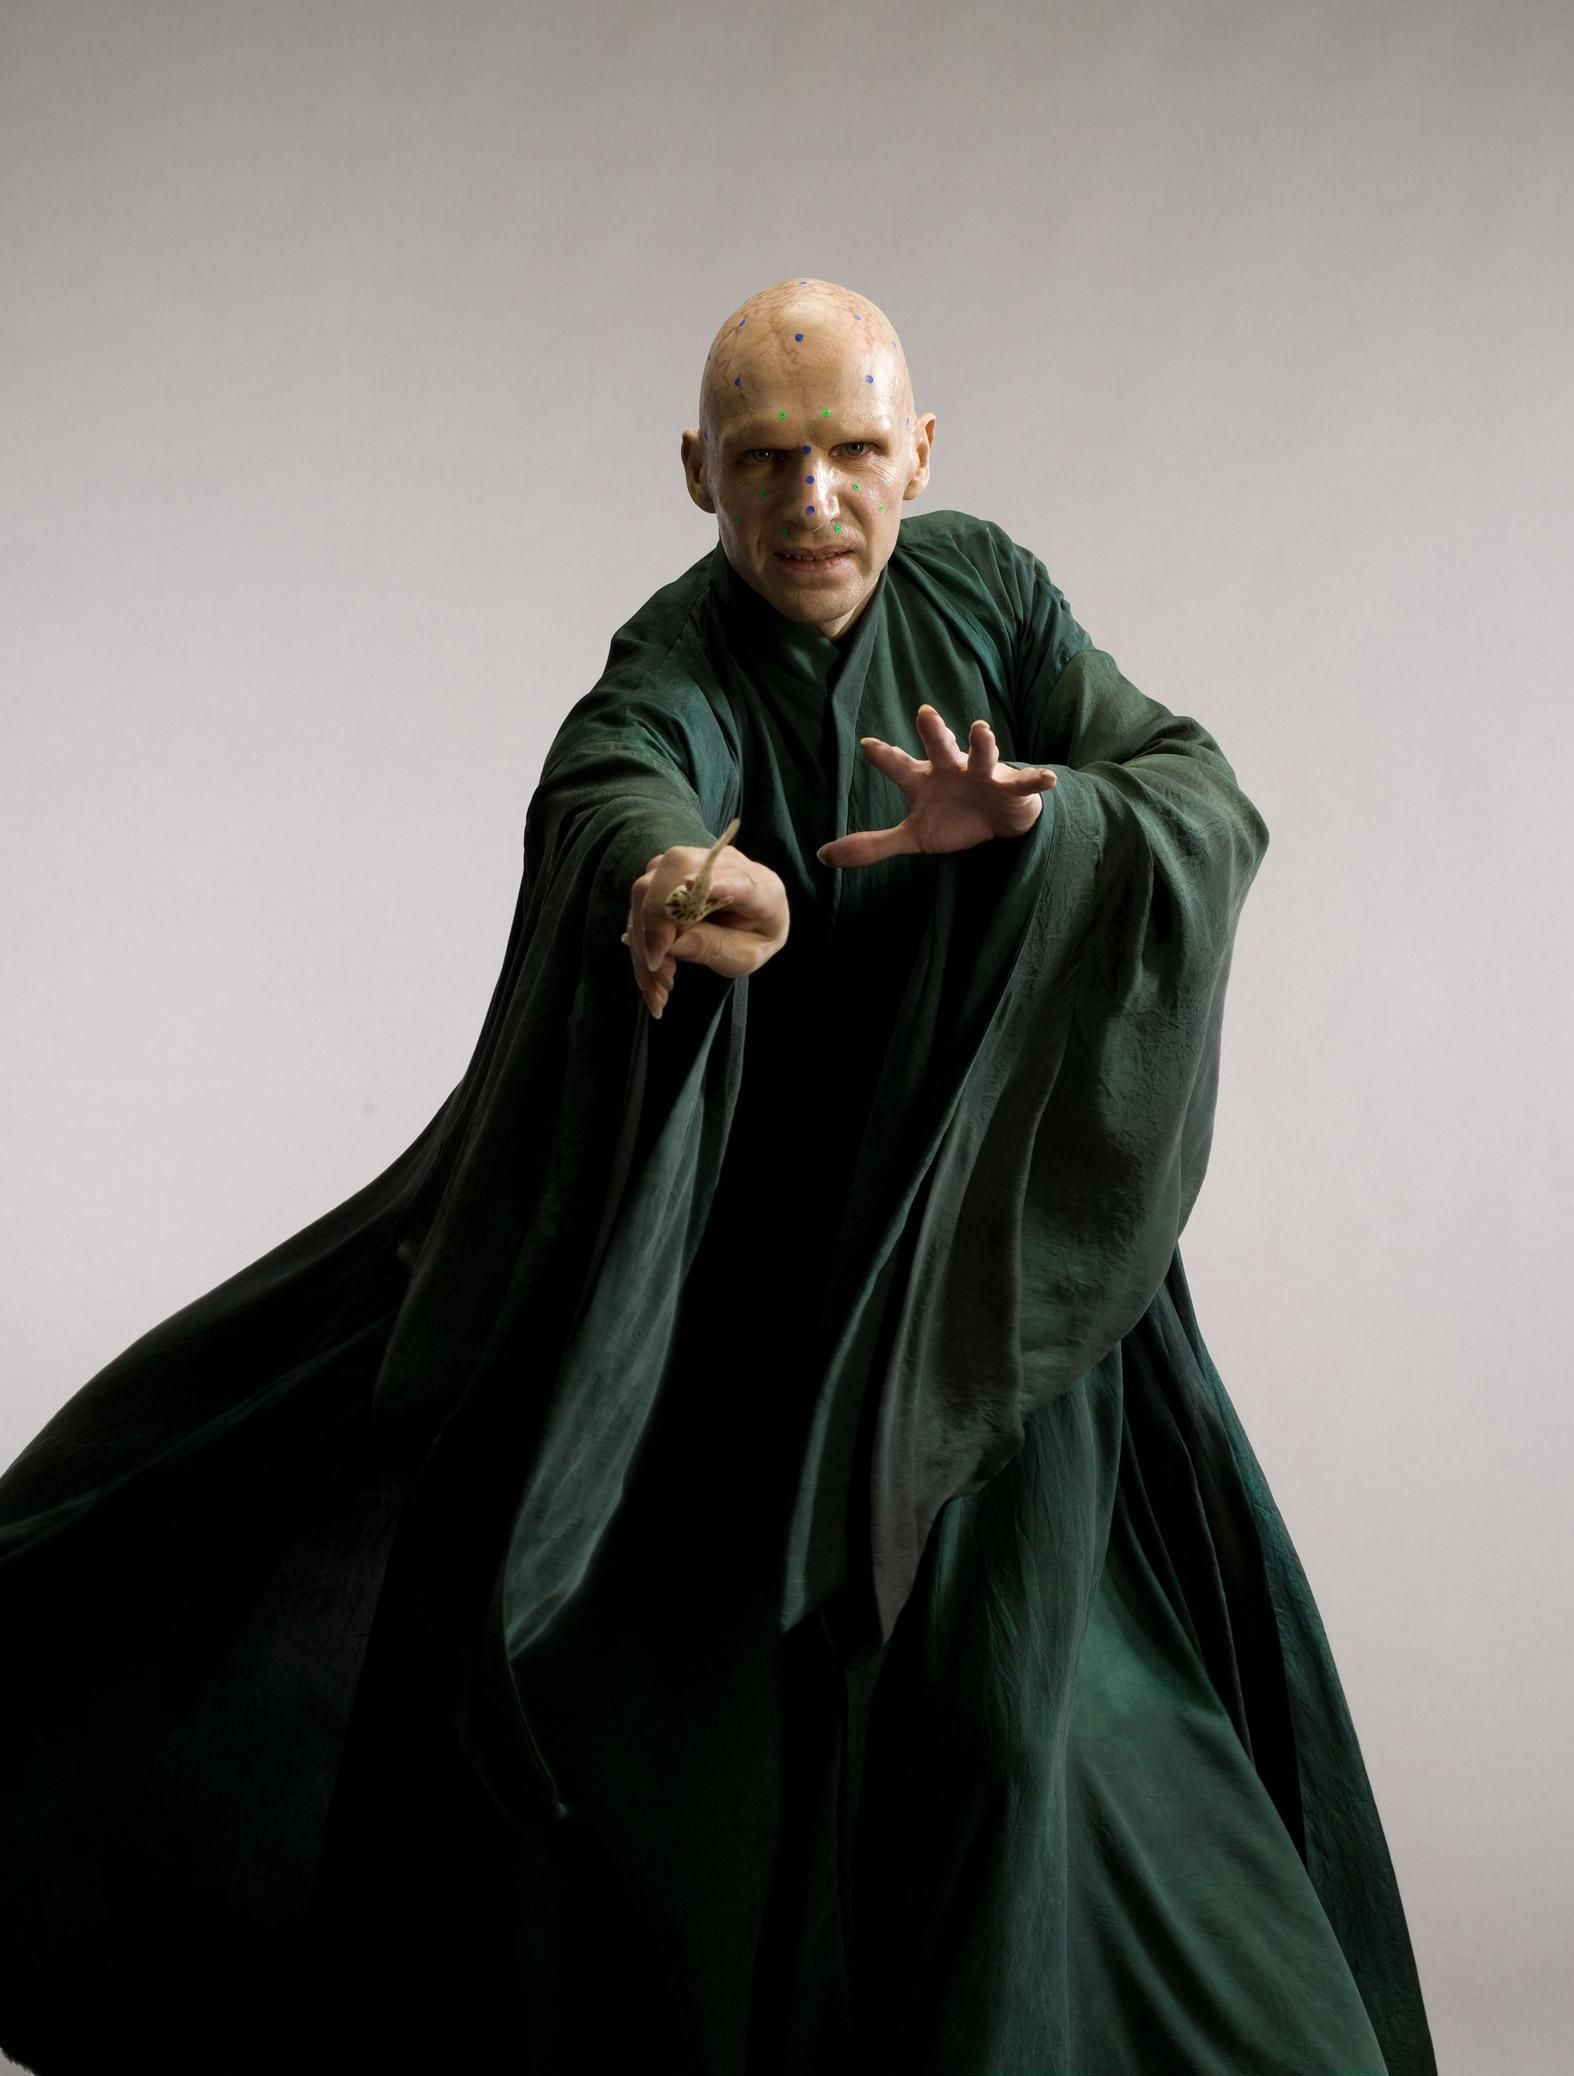 Photoshoots Of Ralph Fiennes As Voldemort Prior To Special Effects From The Order Of The Phoenix And The Deathly Hallows Voldemort Harry Ralph Fiennes Deathly Hallows Movie